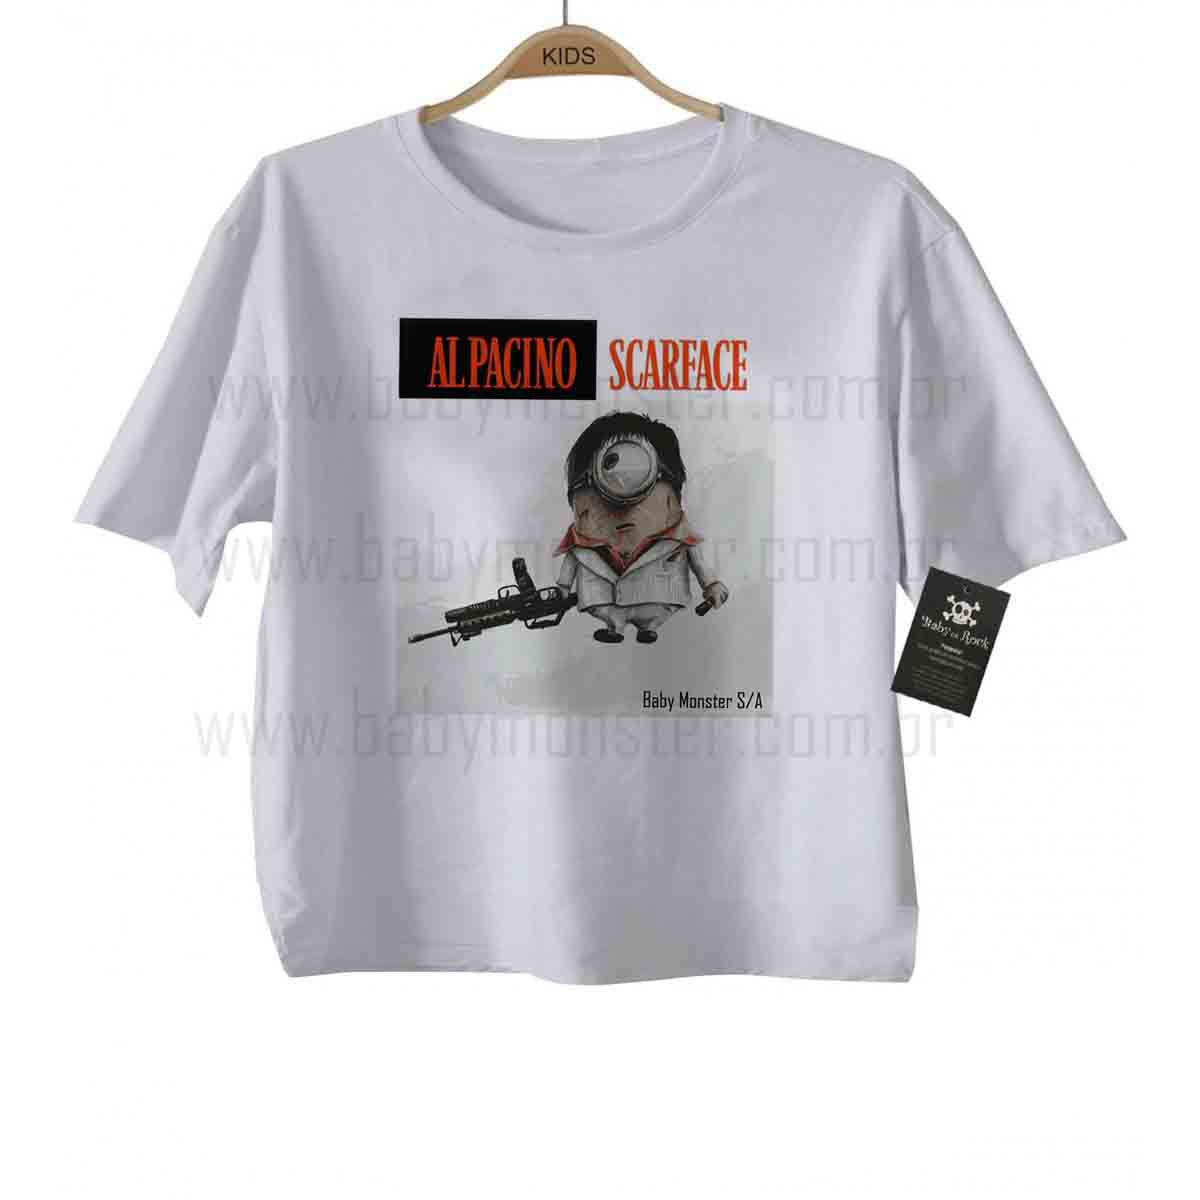 Camiseta Infantil - Scarface Minions - White  - Baby Monster S/A